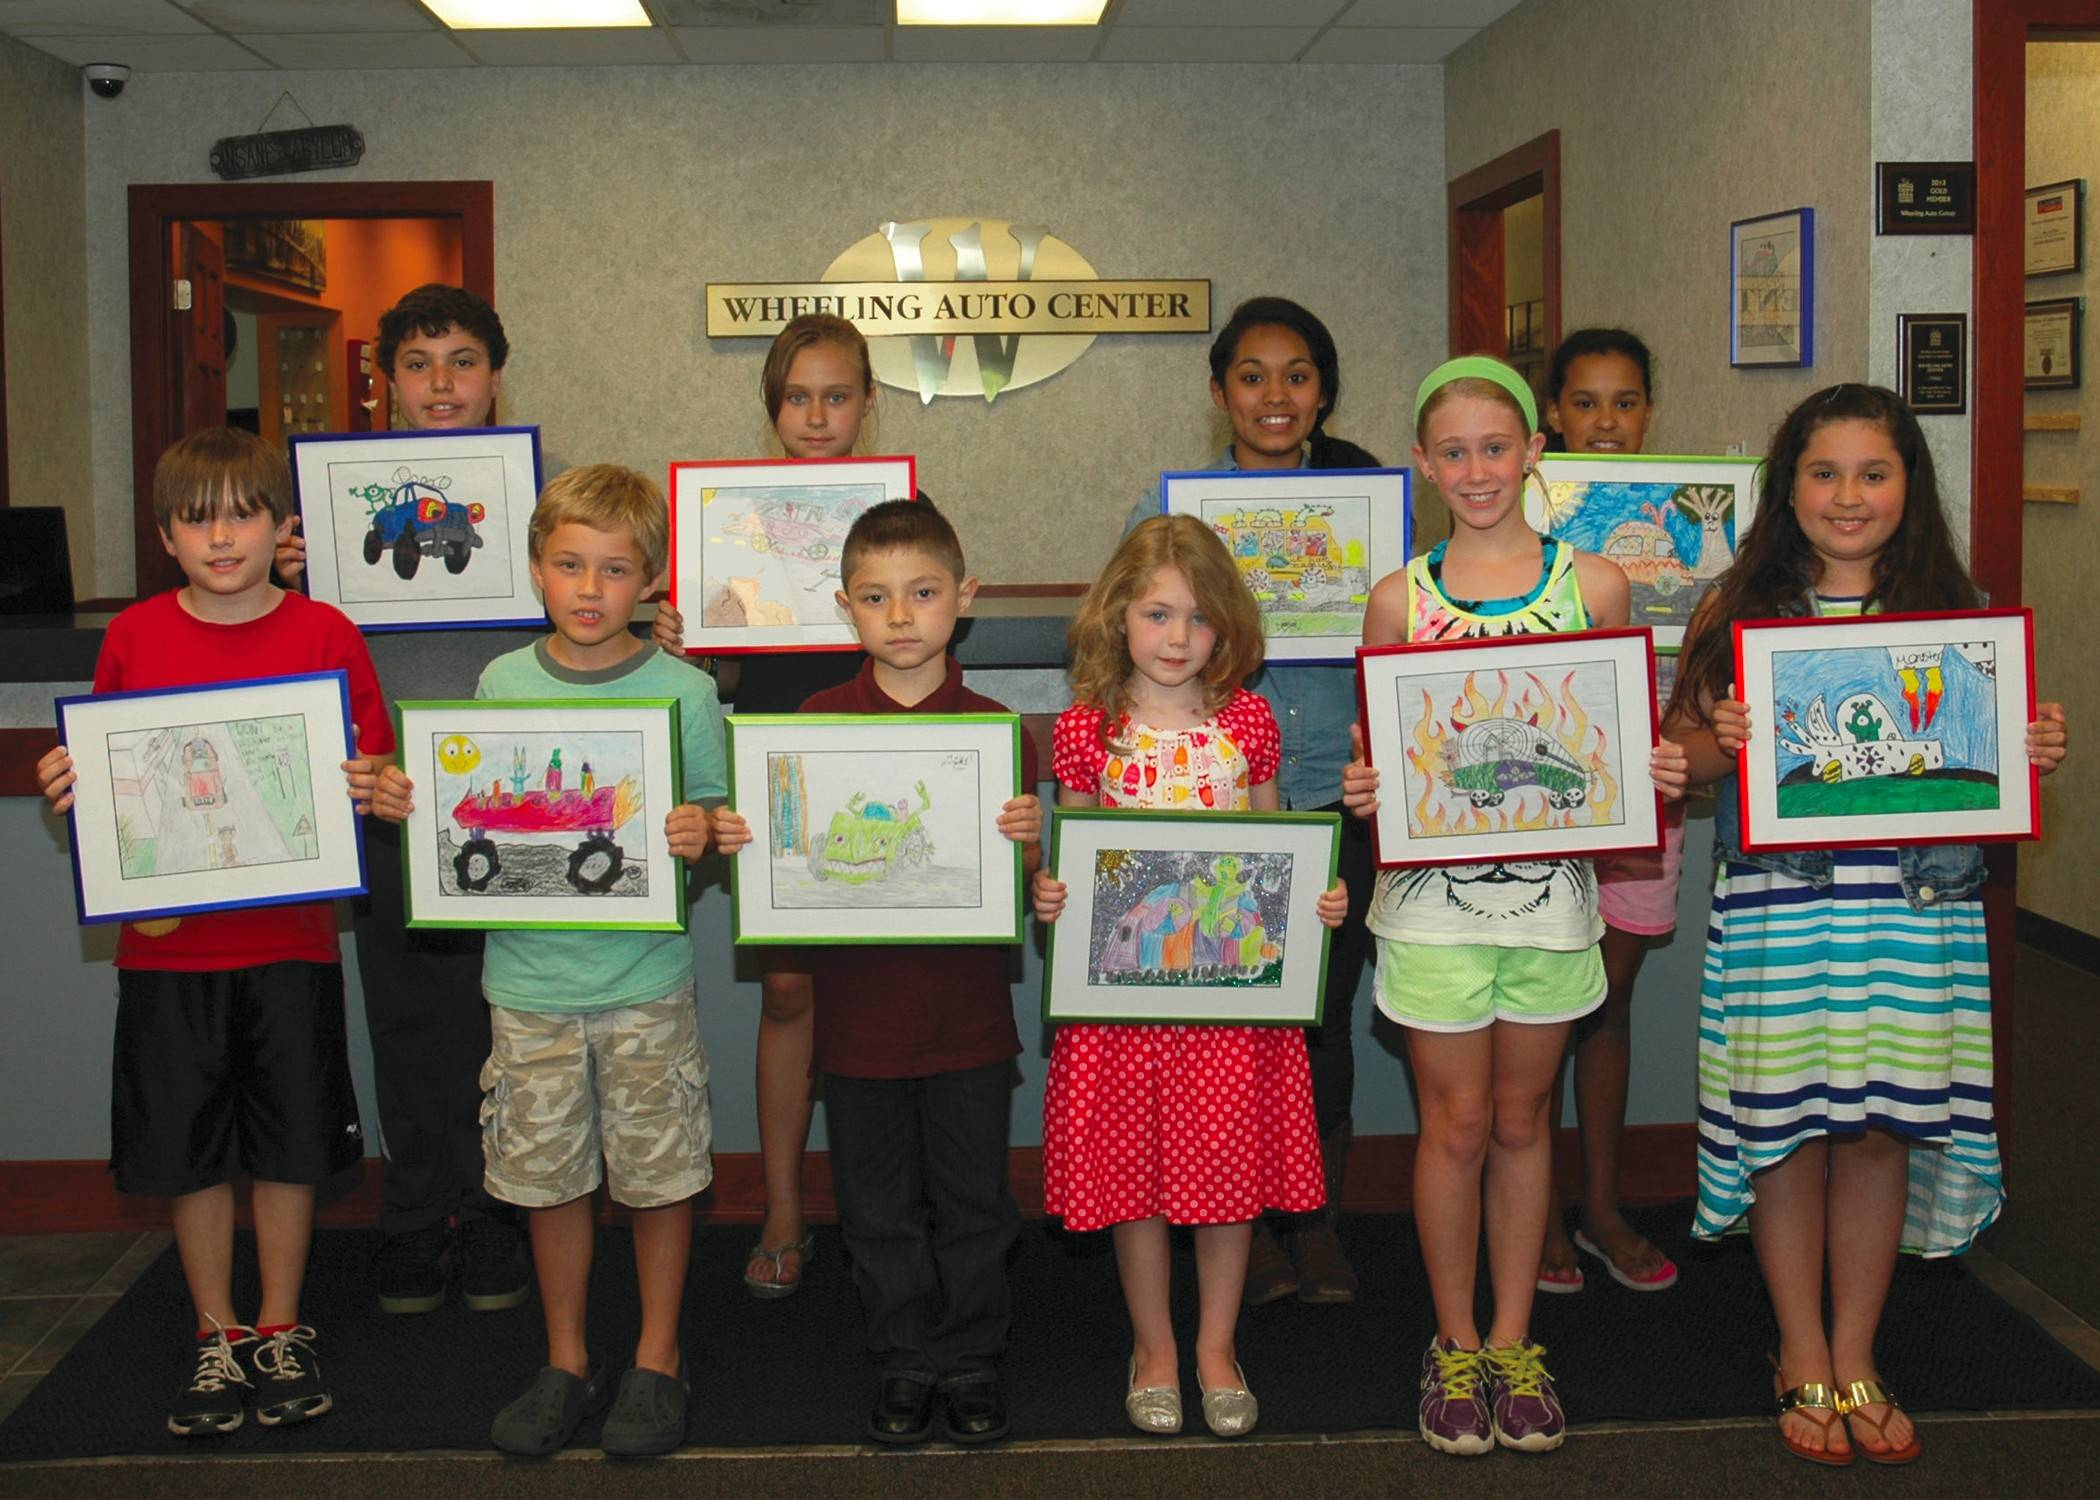 Wheeling Auto Center Art Contest winners, from left, are: Front row: Toby Wachter, Sebastian Palikot, Angel Marquez, Annelise Dreyer, Angelina Craig and Tania Huerta; back row: Jacob Zamora, Nicole Elizabeth Furman, Mariana Montoya and Paige Butler.